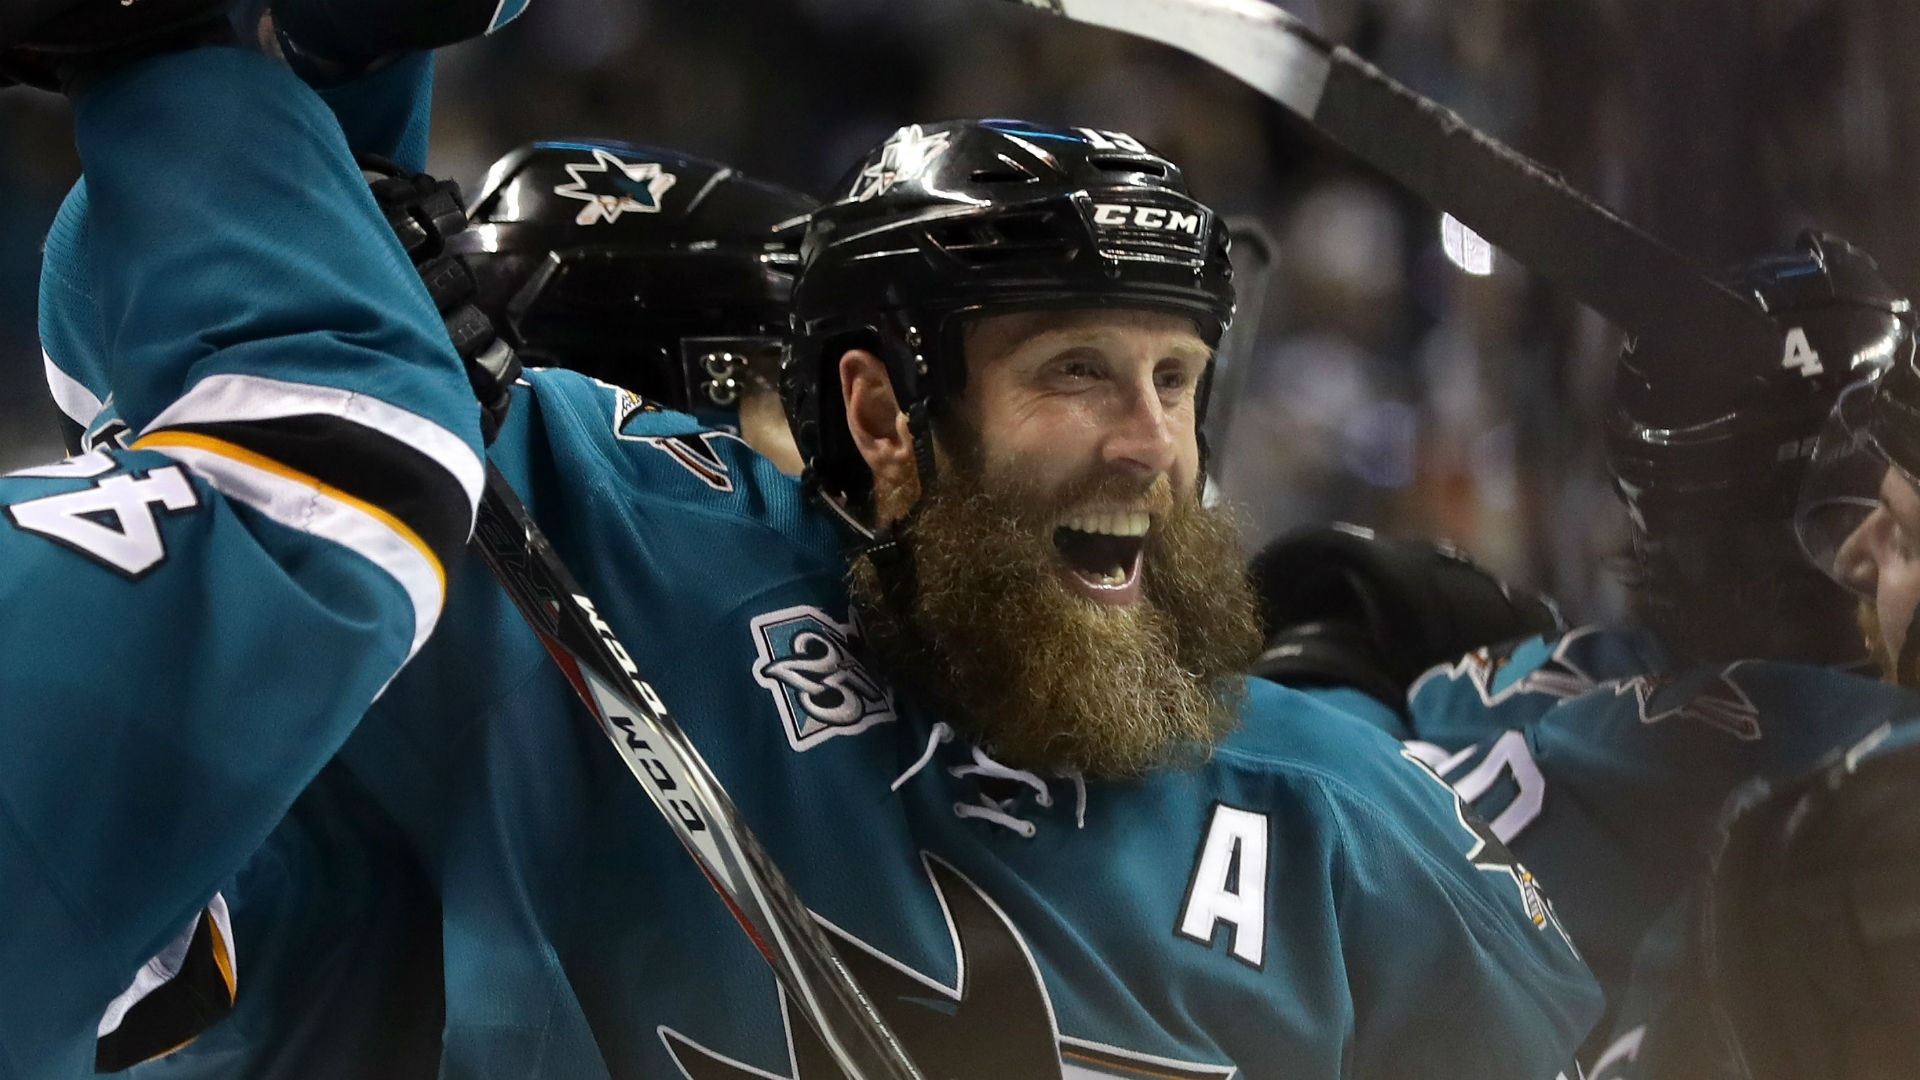 Joe Thornton should watch hockey not play with kids says Mike 1920x1080